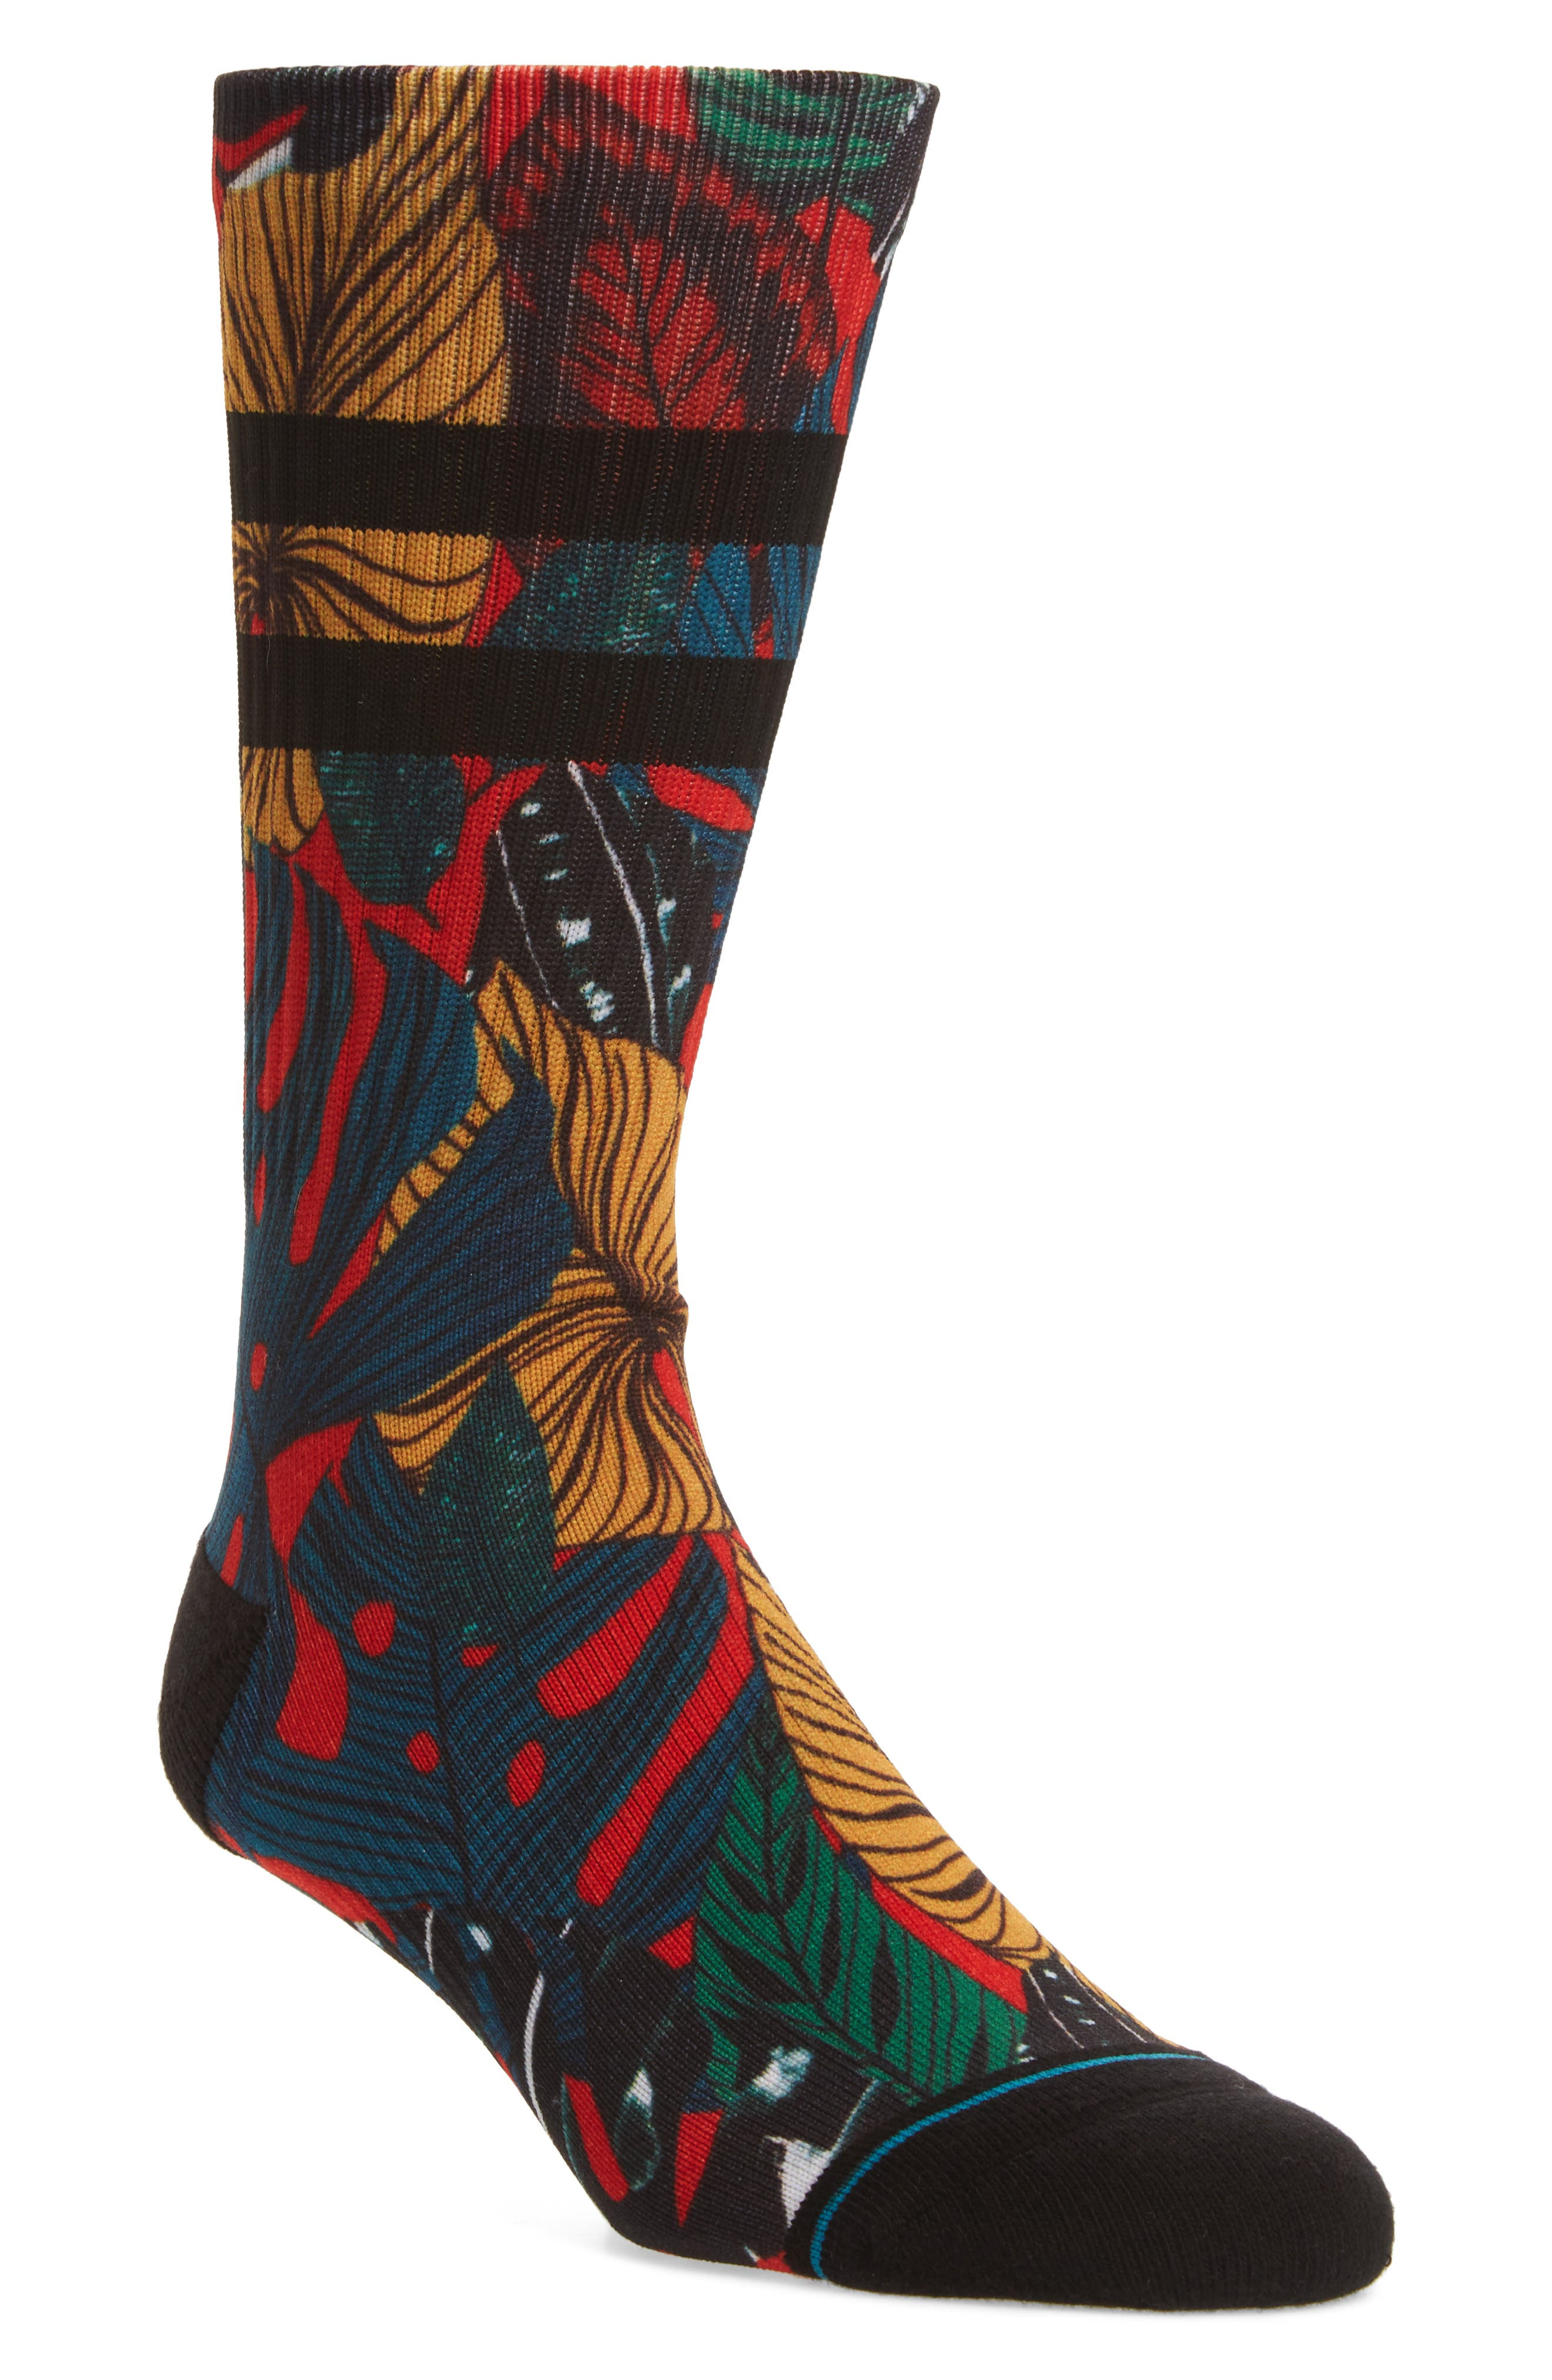 House Plant Socks,                             Main thumbnail 1, color,                             Red